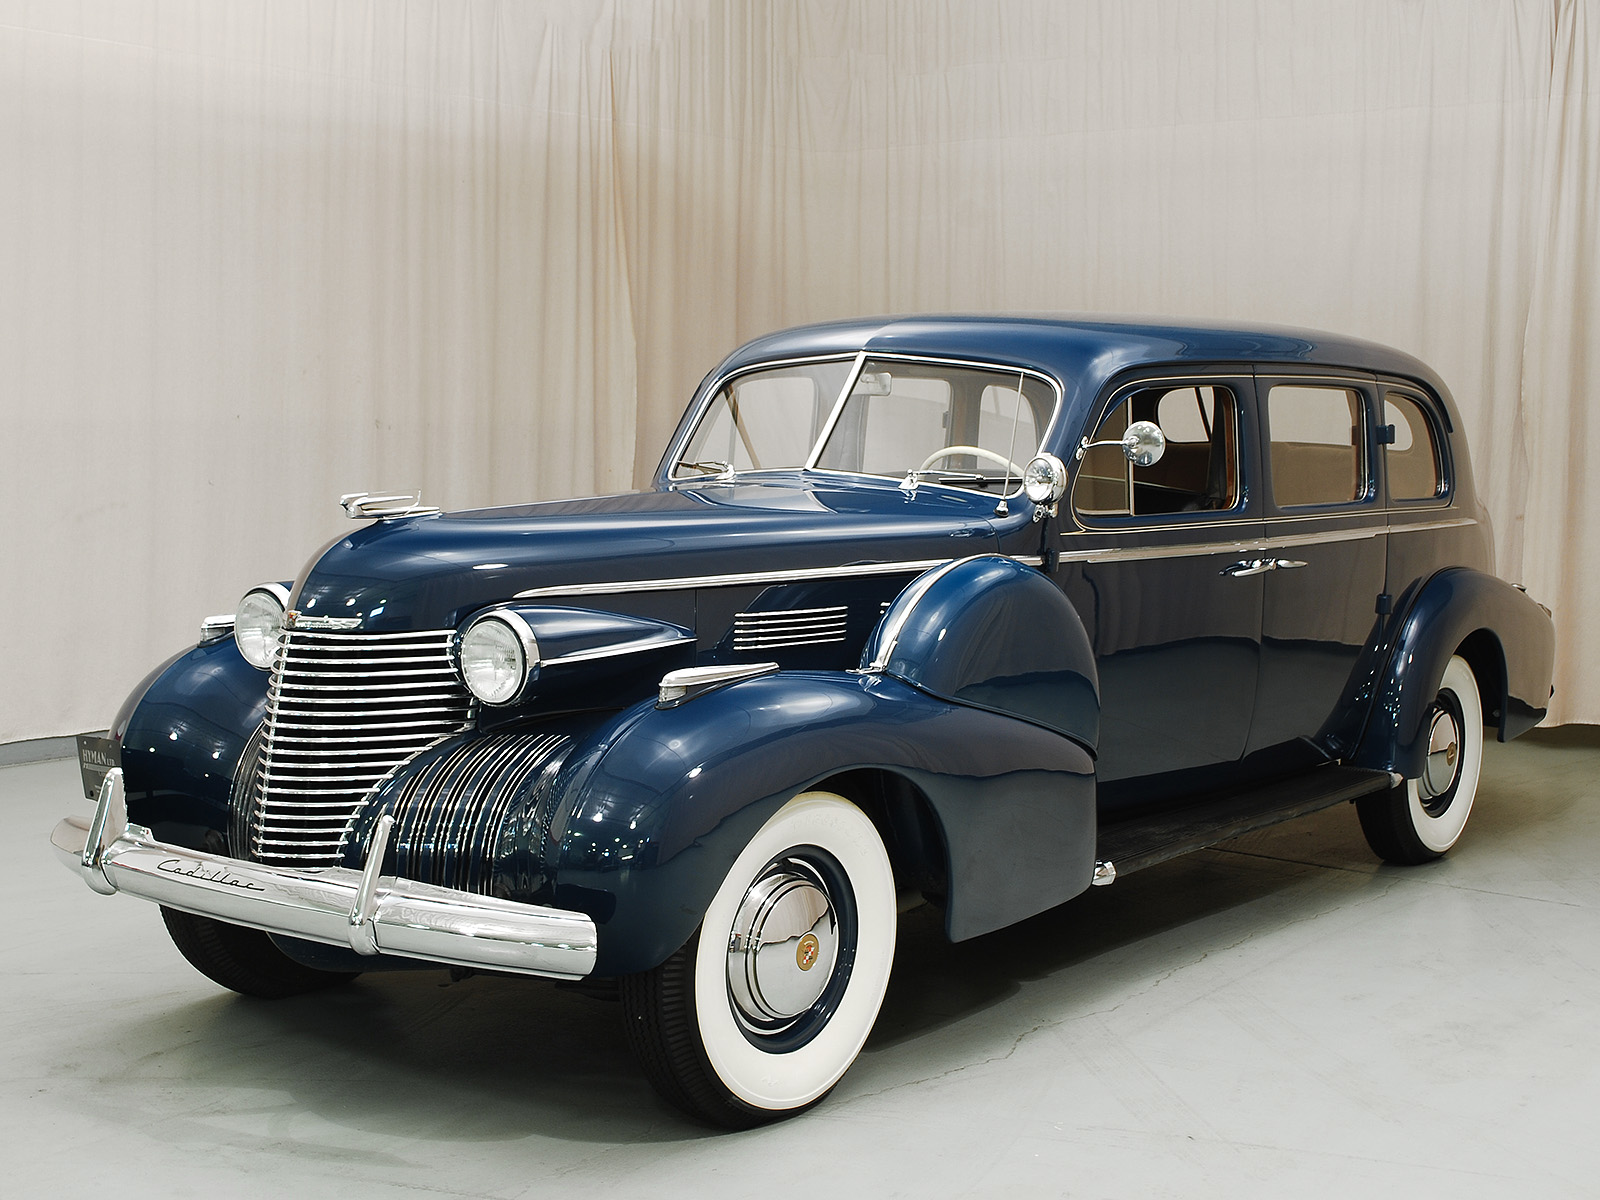 1940 cadillac 40 75 imperial sedan 7 passenger hyman ltd